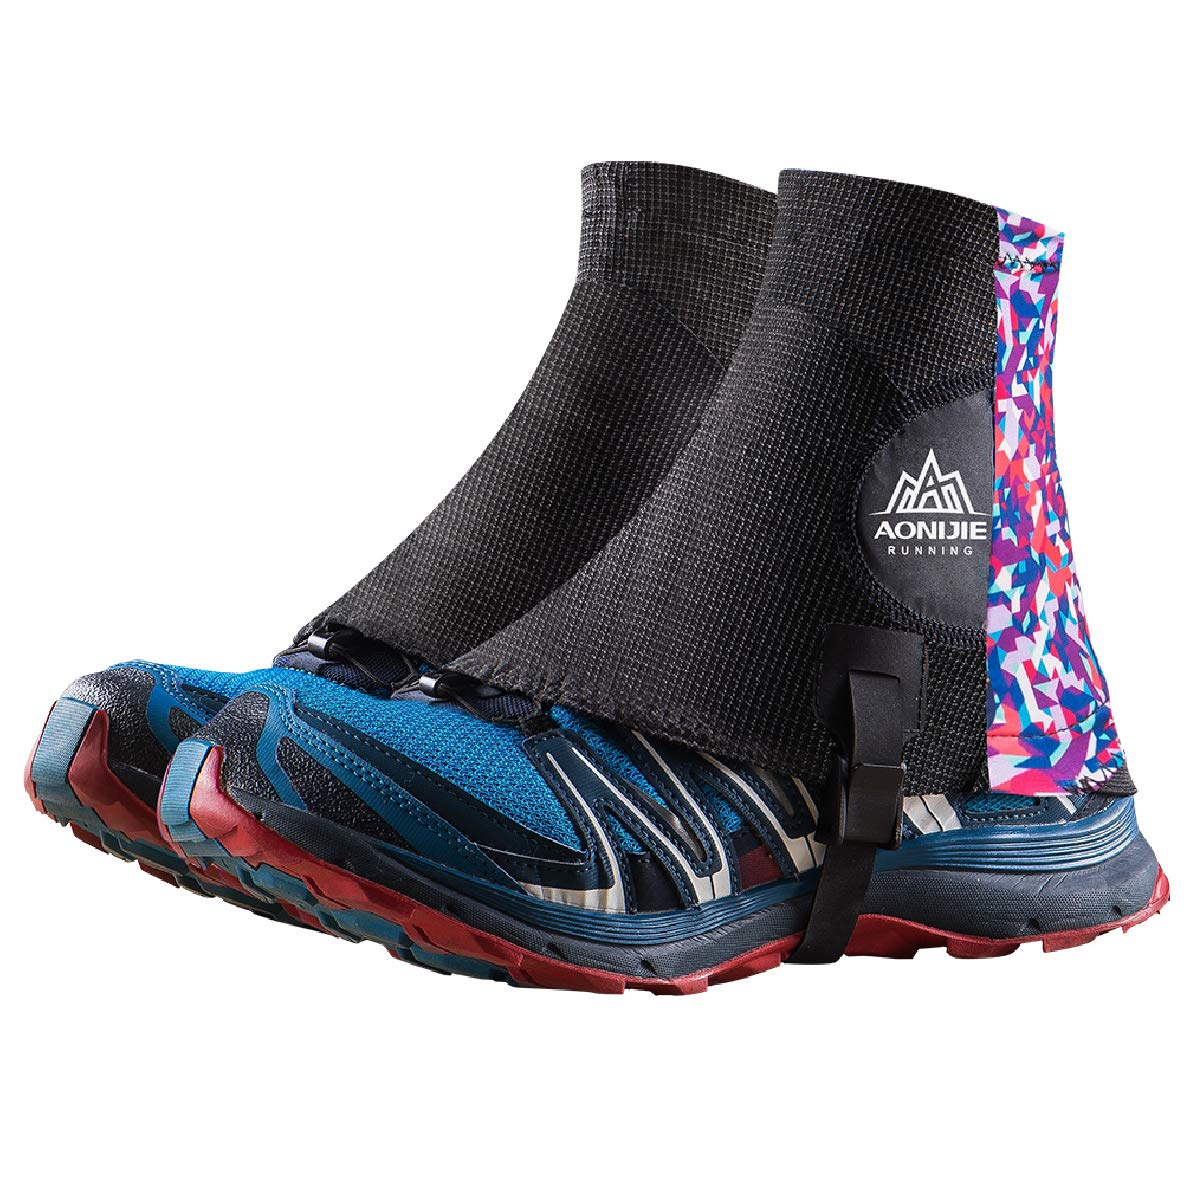 TRIWONDER Trail Gaiters Low Ankle Gators Reflective Running Gaiters with UV Protection for Men